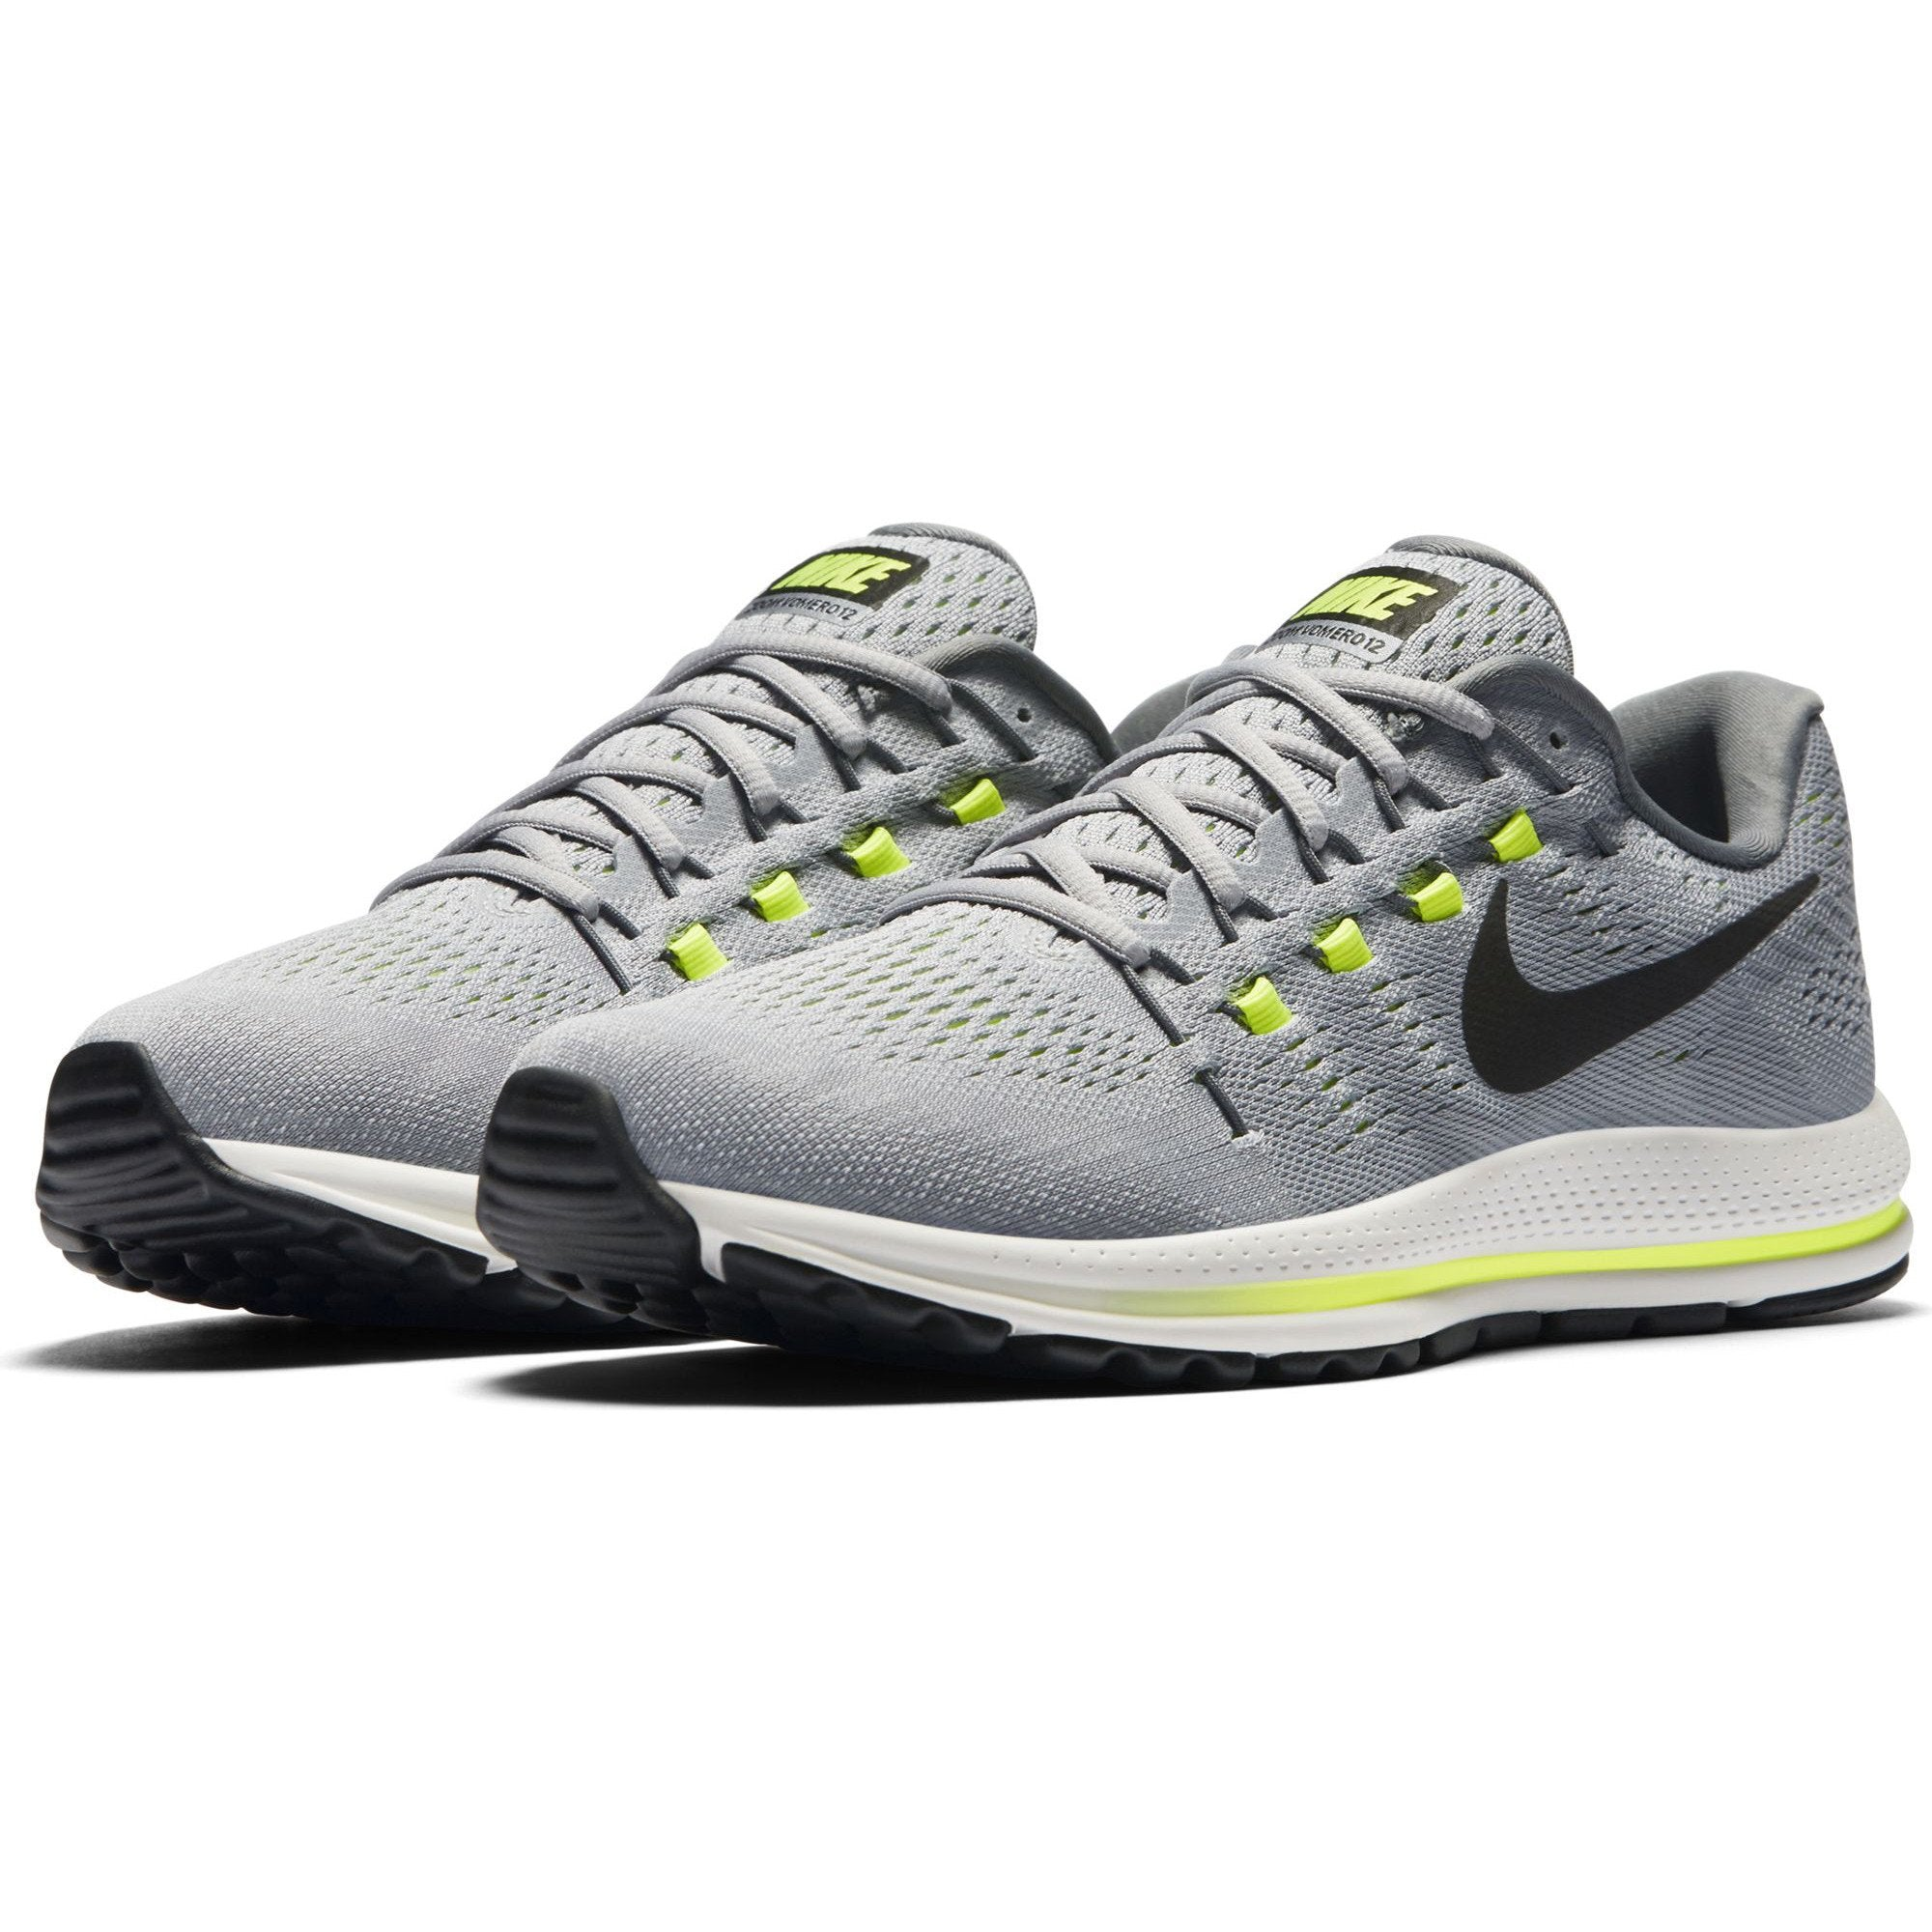 a786b805223 detroit 92d43 454df uk trainers nike air zoom vomero 12 volt ...